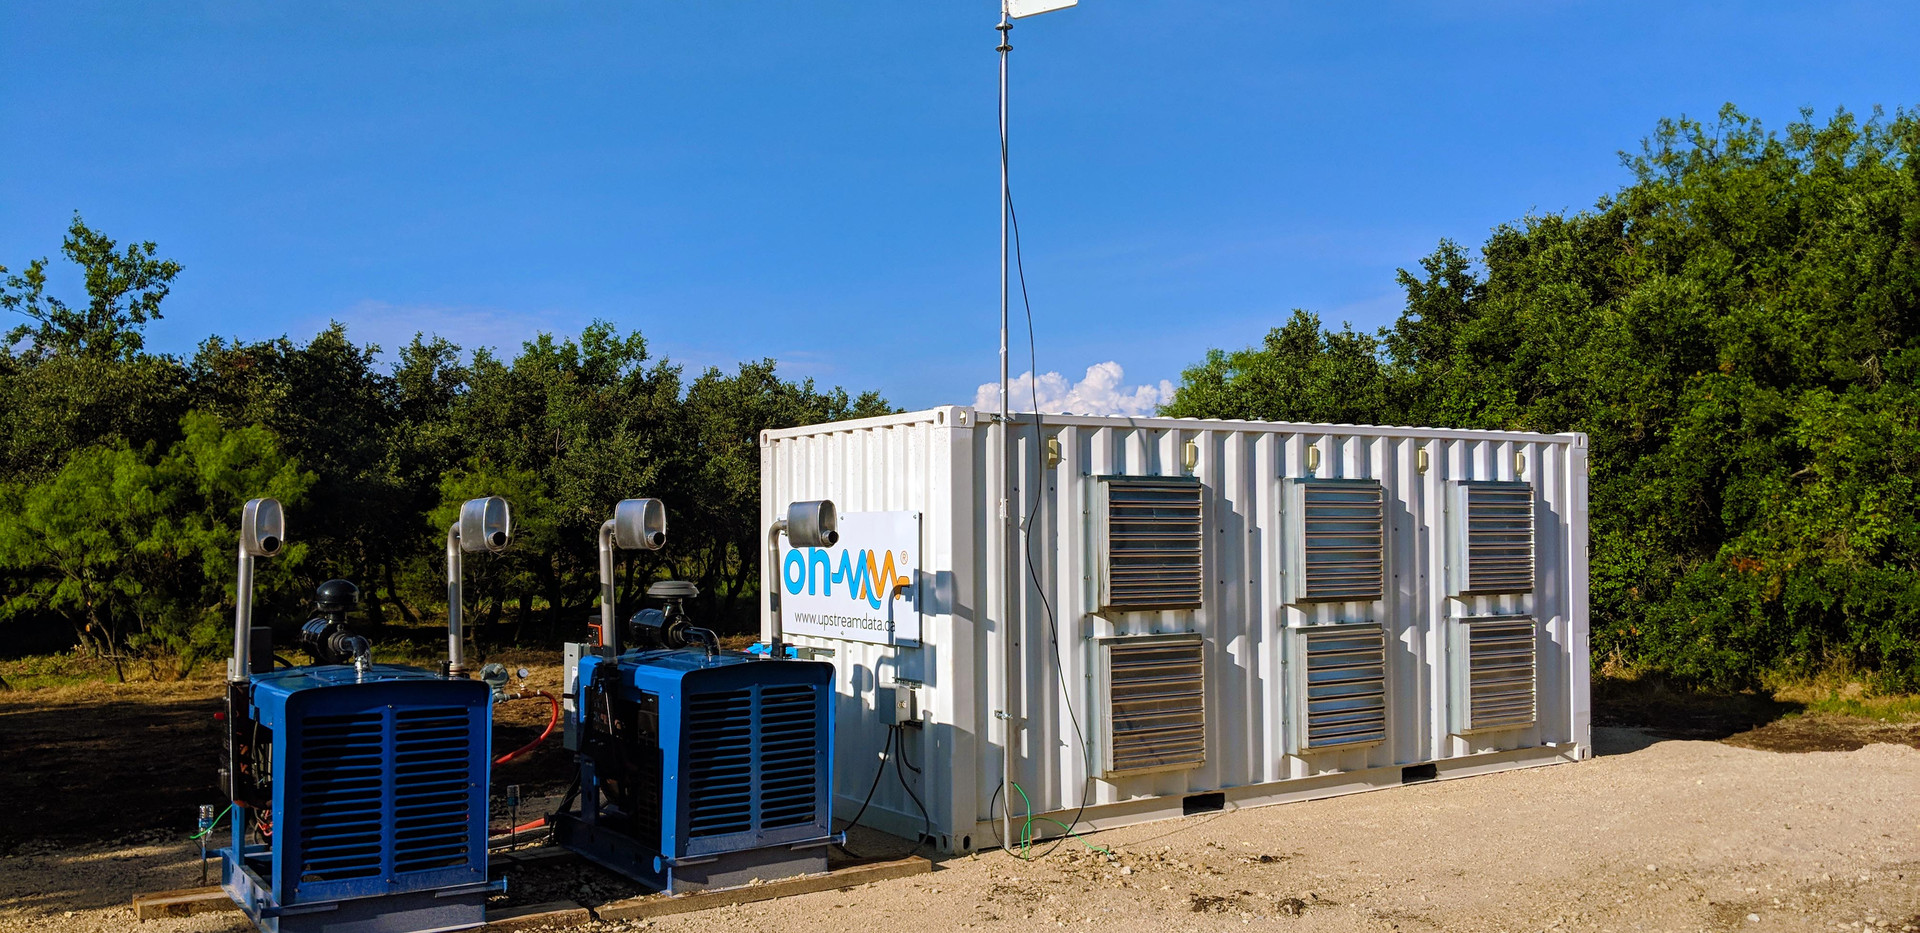 Custom Ohmm Datacenter deployed to central Texas